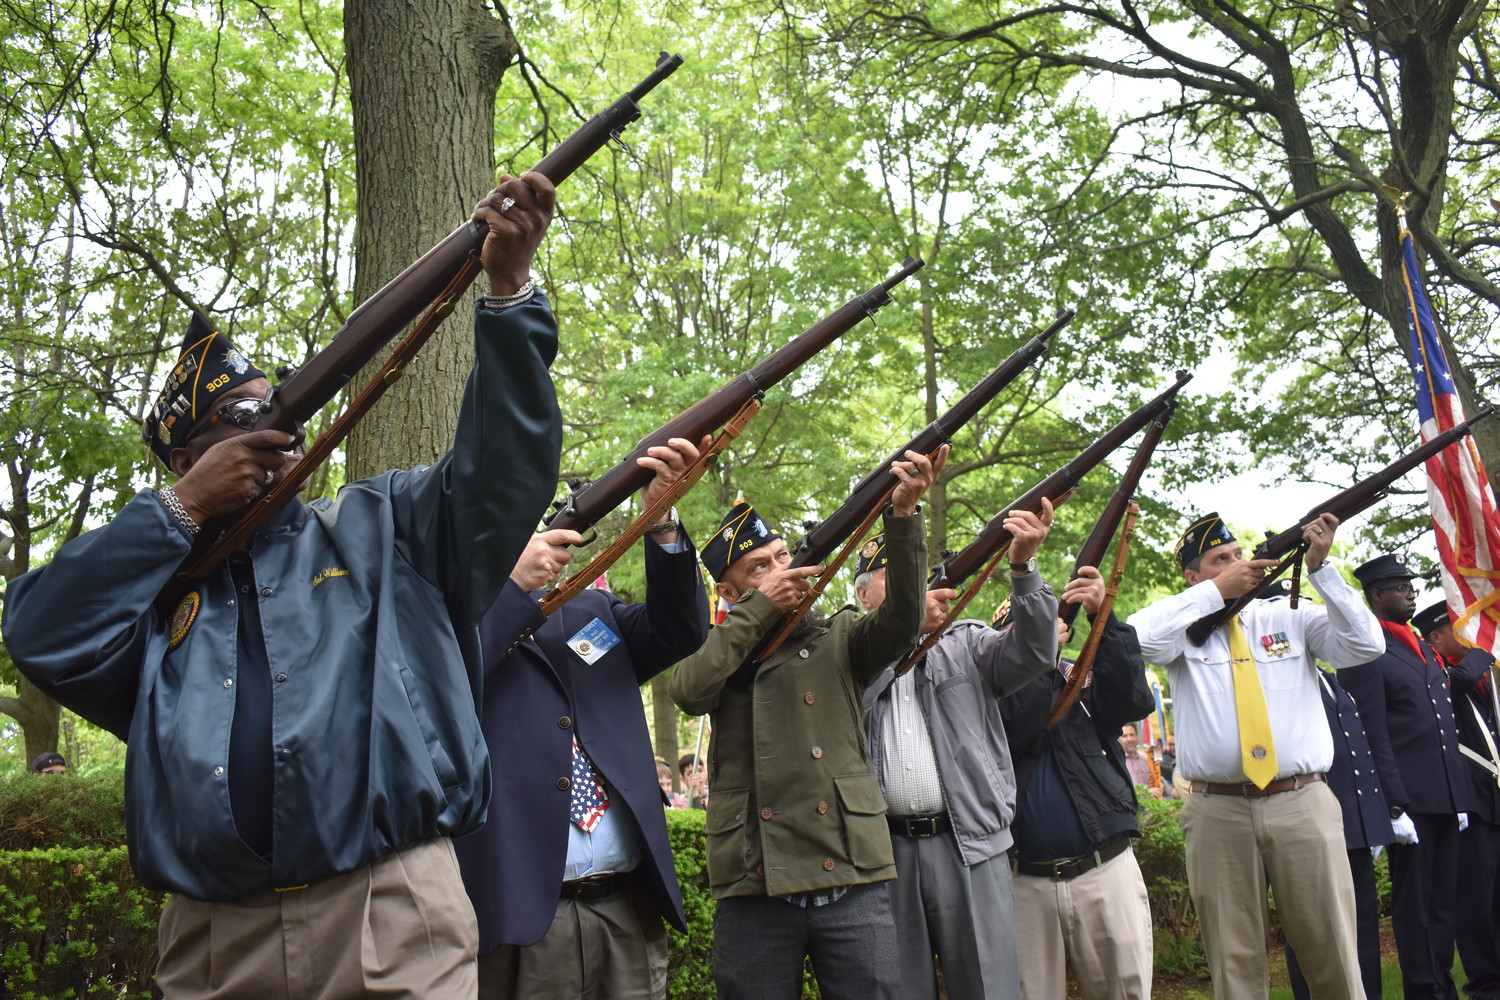 Veterans fired rifles during a ceremony that followed the parade.